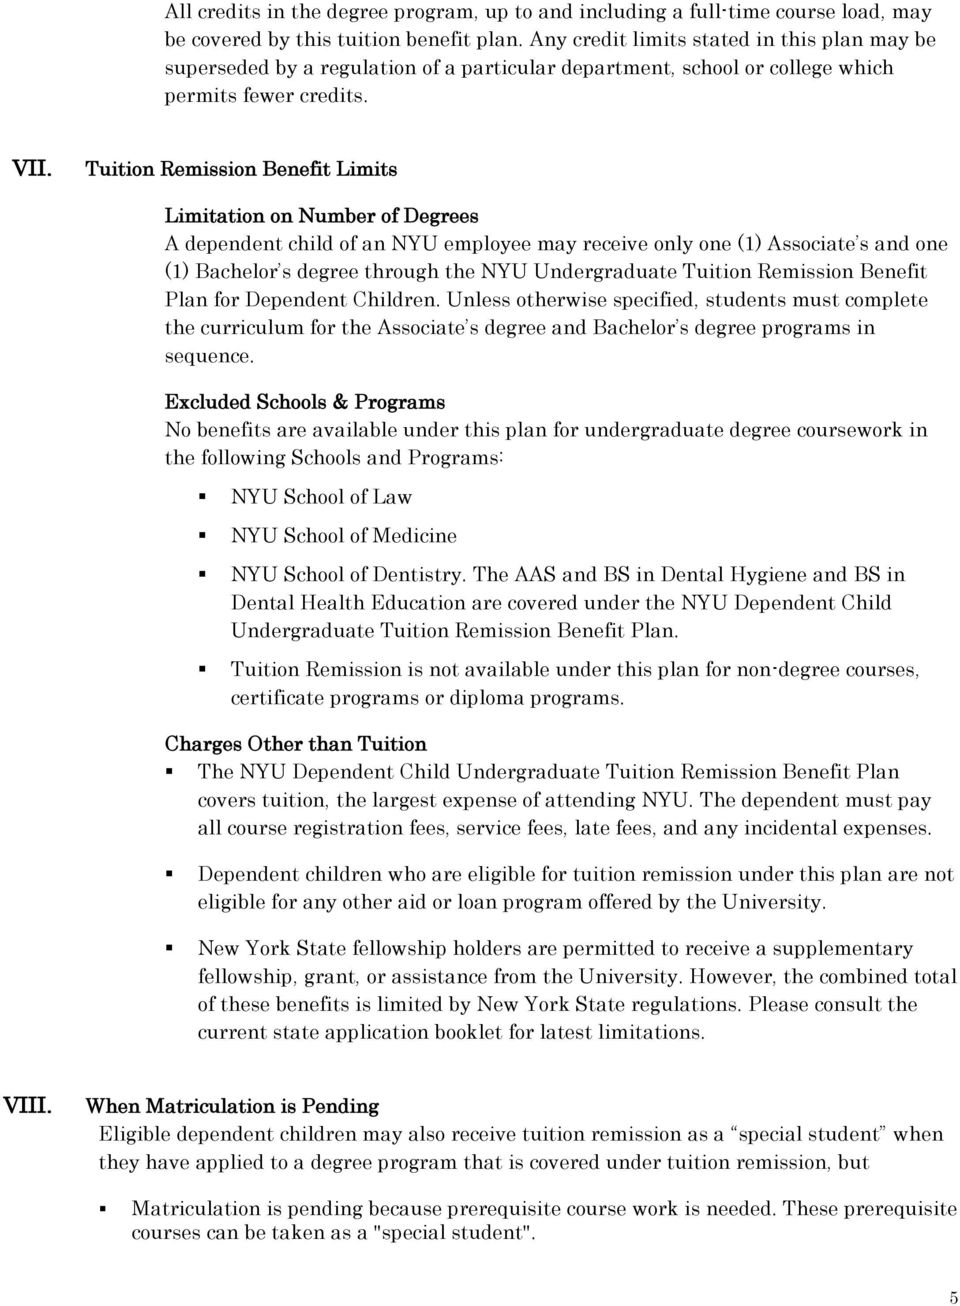 Nyu Tuition Remission Benefit Plan For Dependent Children